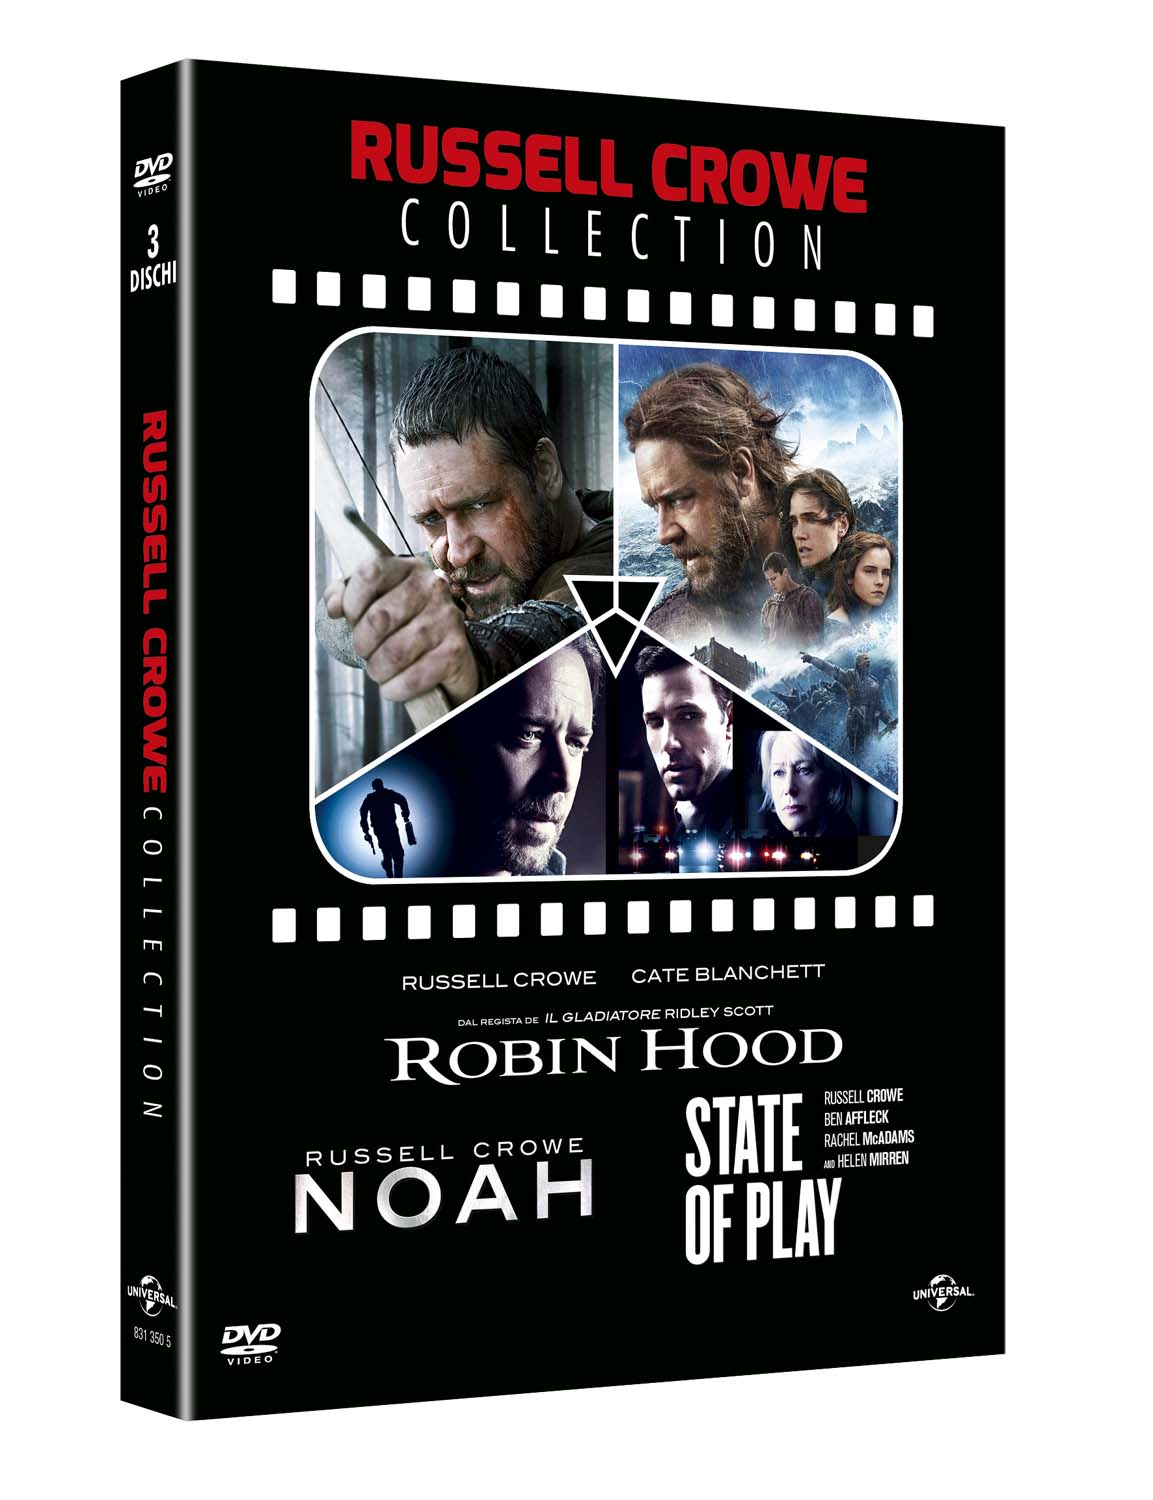 COF.RUSSELL CROWE COLLECTION (3 DVD) NOAH - ROBIN HOORD - STATE